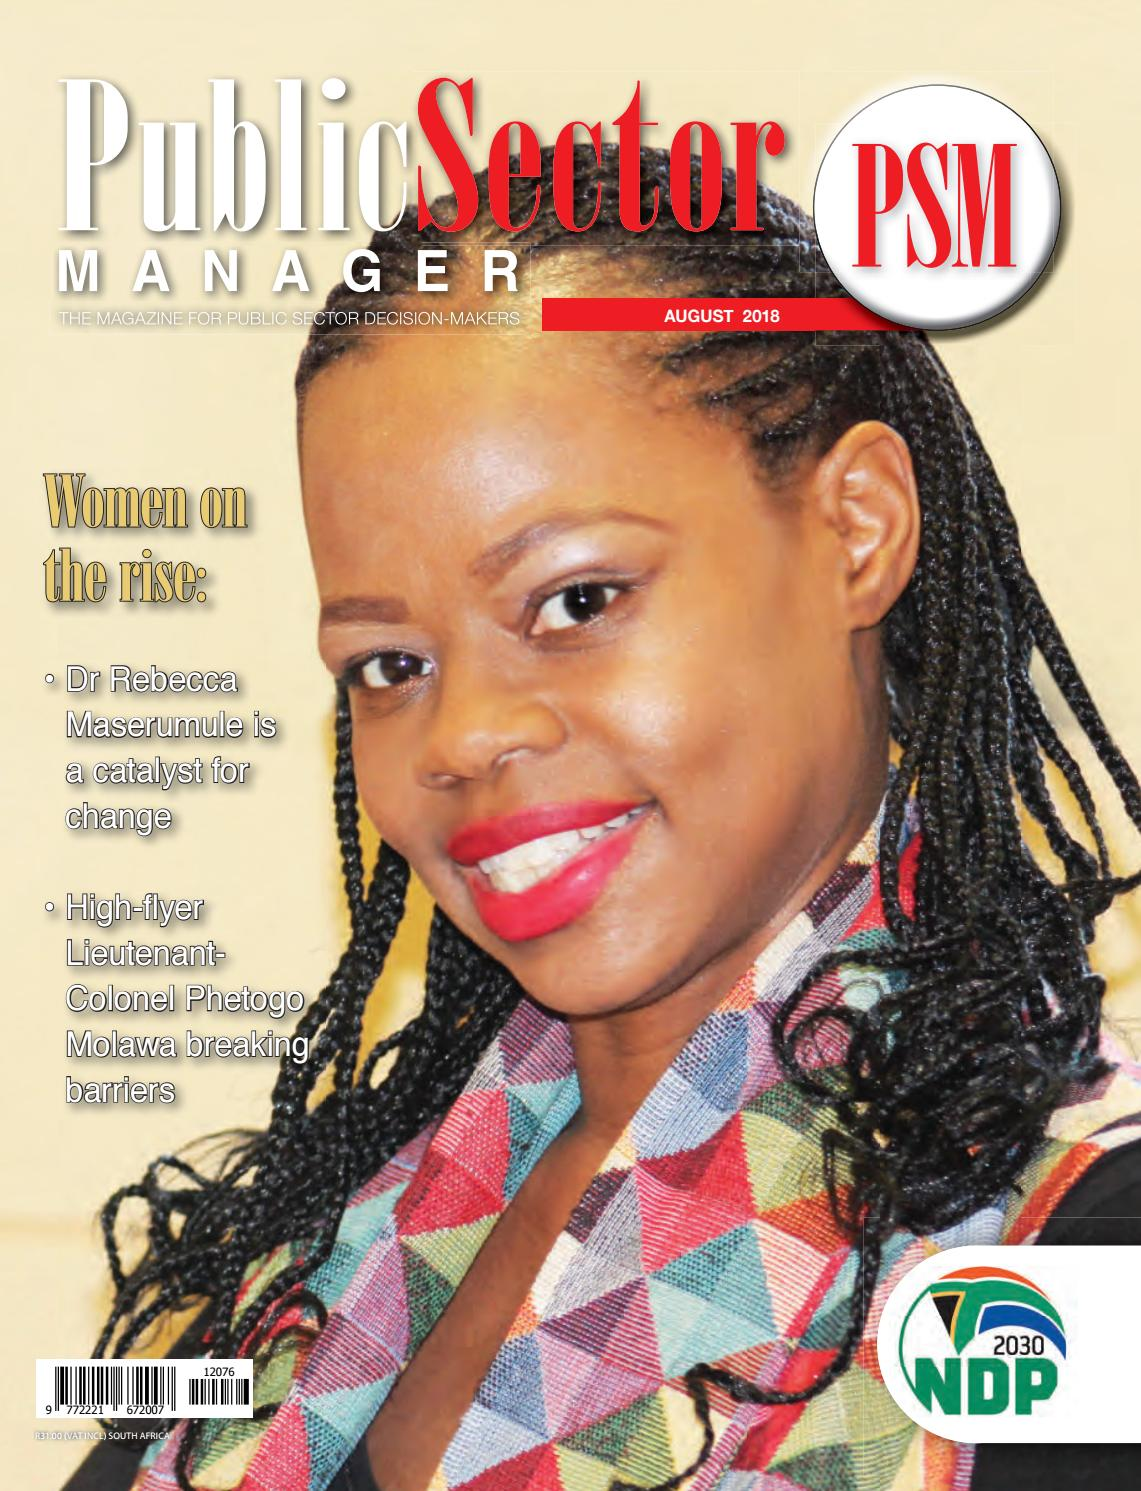 tmf magazine issue 12 pdf download